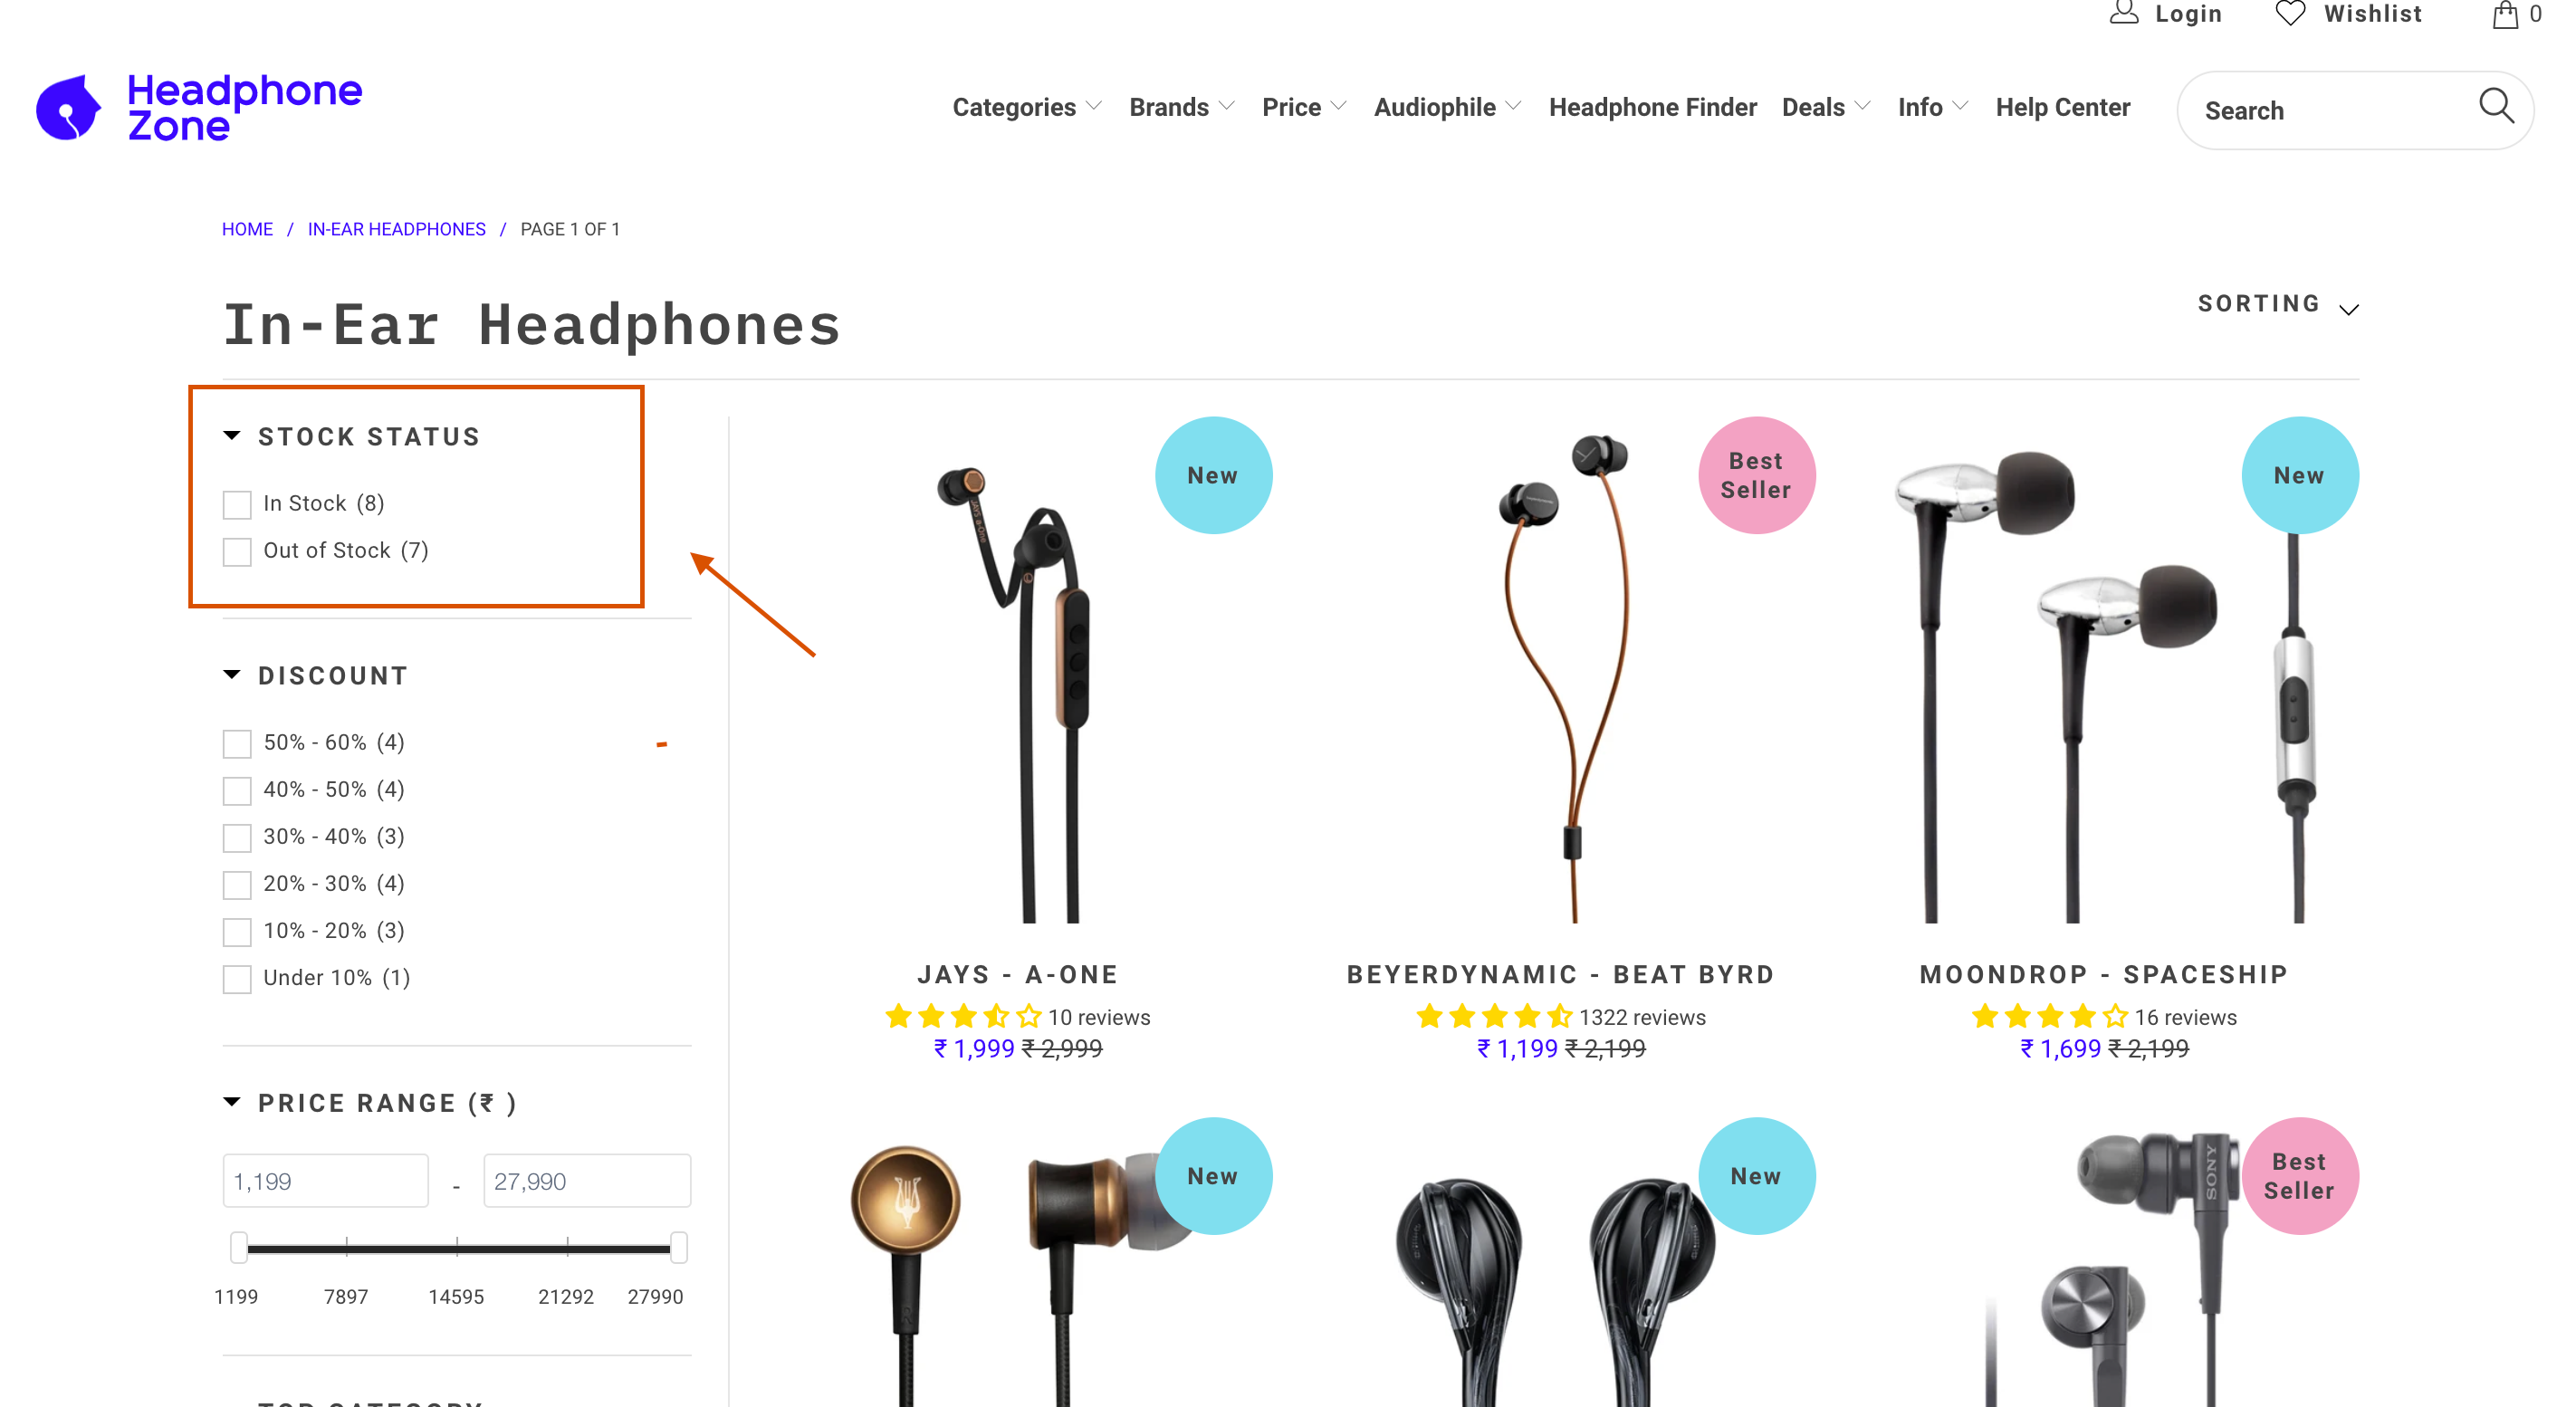 Headphone Zone thematic filters faceted search